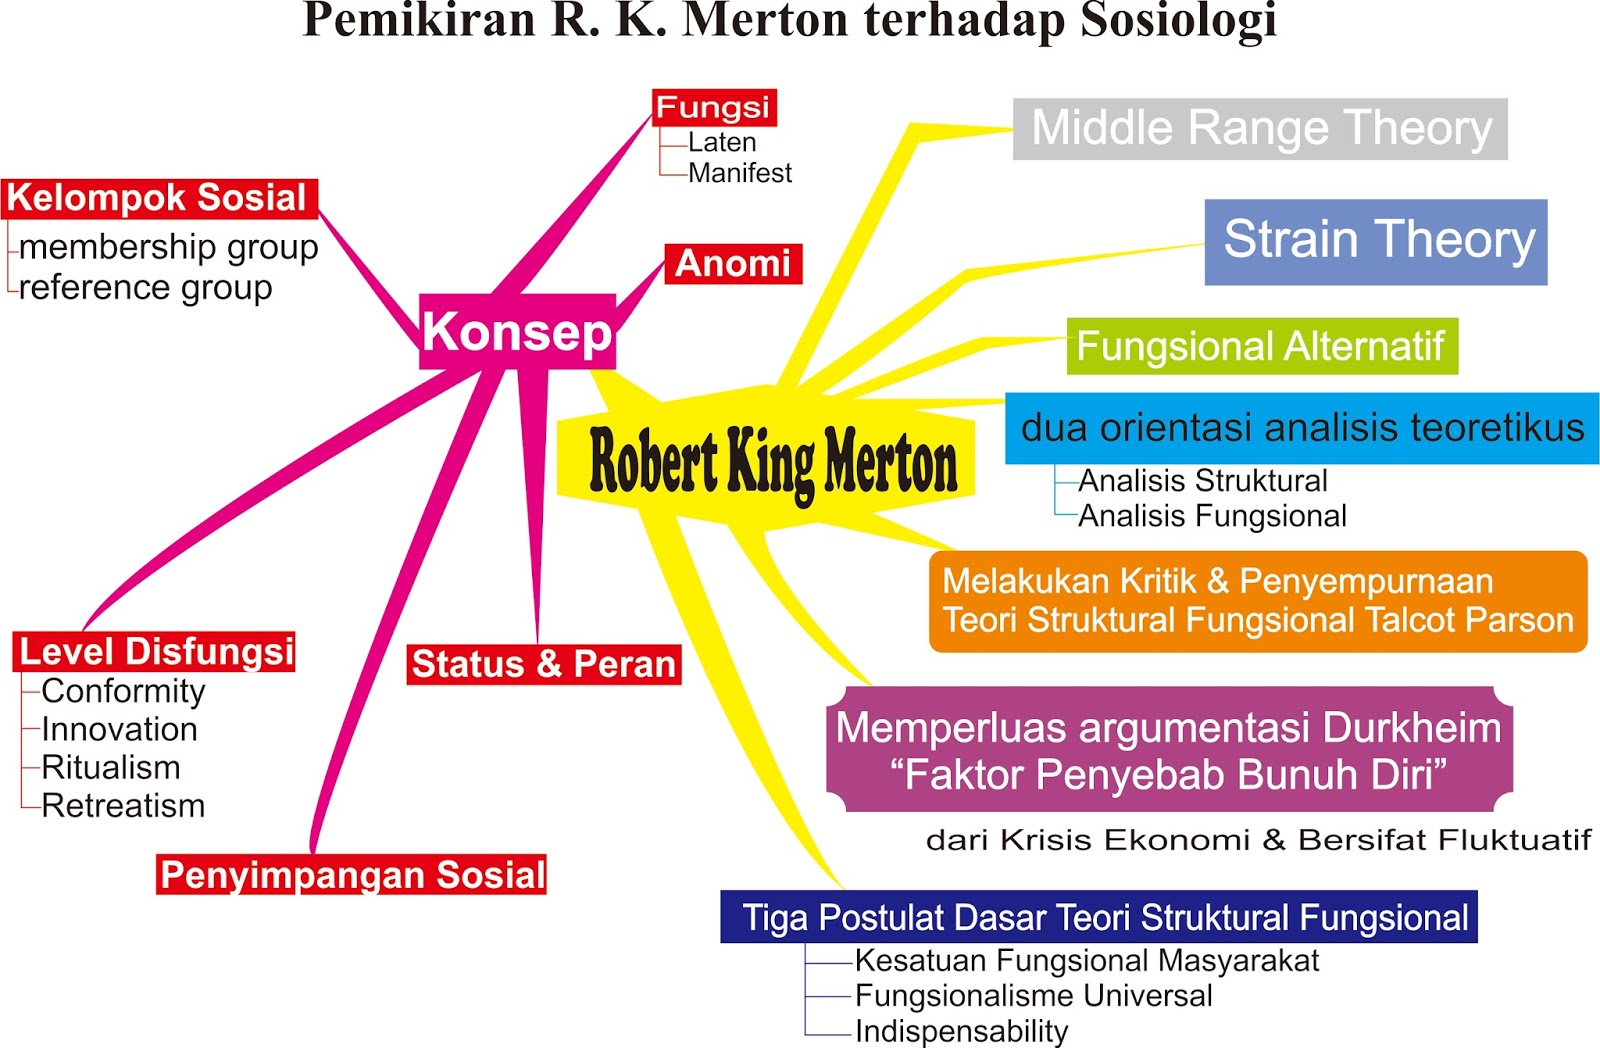 merton thesis scientific revolution The scientific revolution made a major impact on europe in the 16th and 17th centuries the new scientific findings made in this time changed the way.